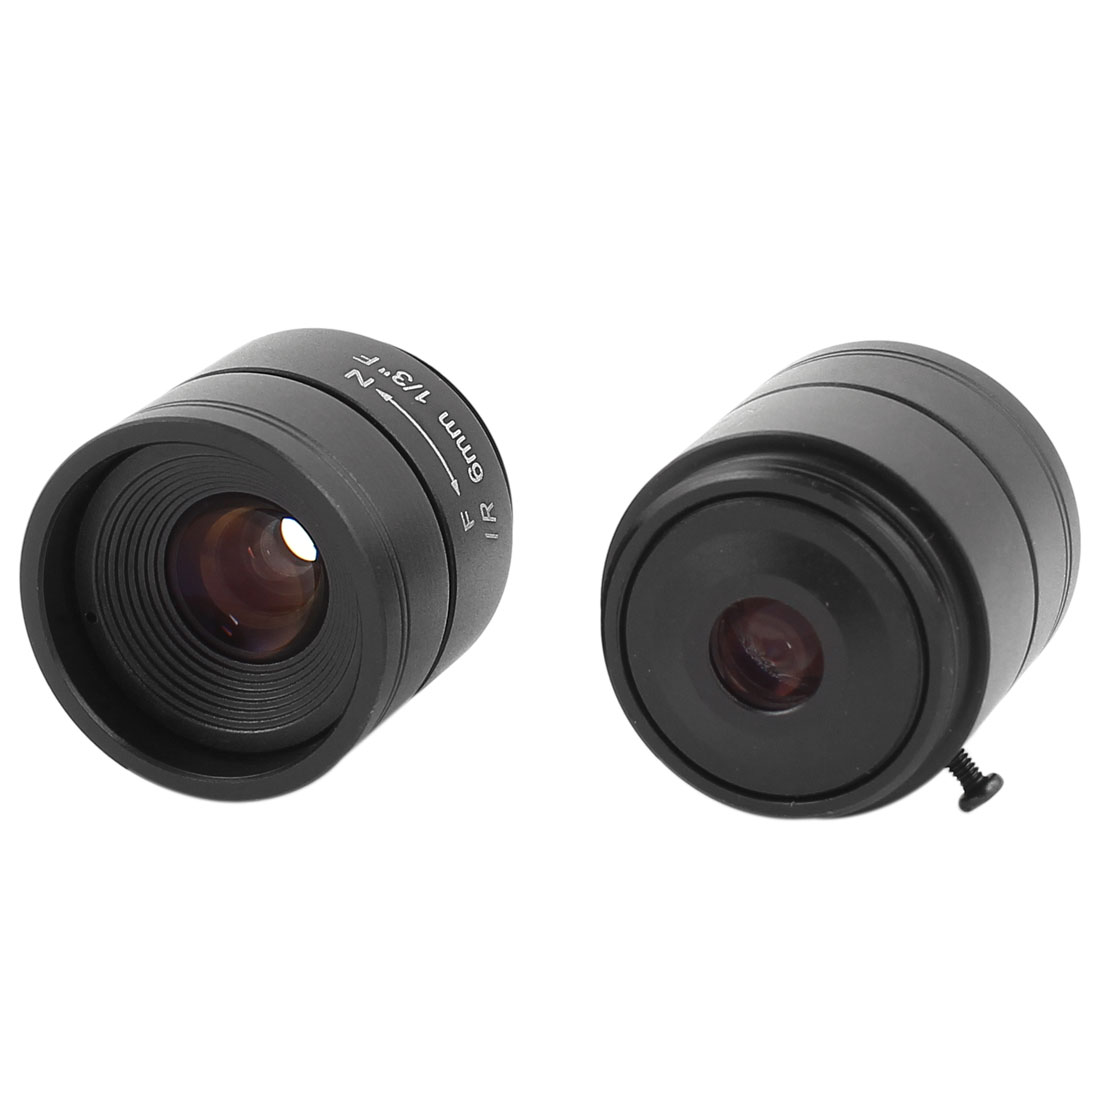 "2 Pcs 6mm F1.2 1/3"" CS Mount Fixed Iris Monofocal Lens for Security Camera"